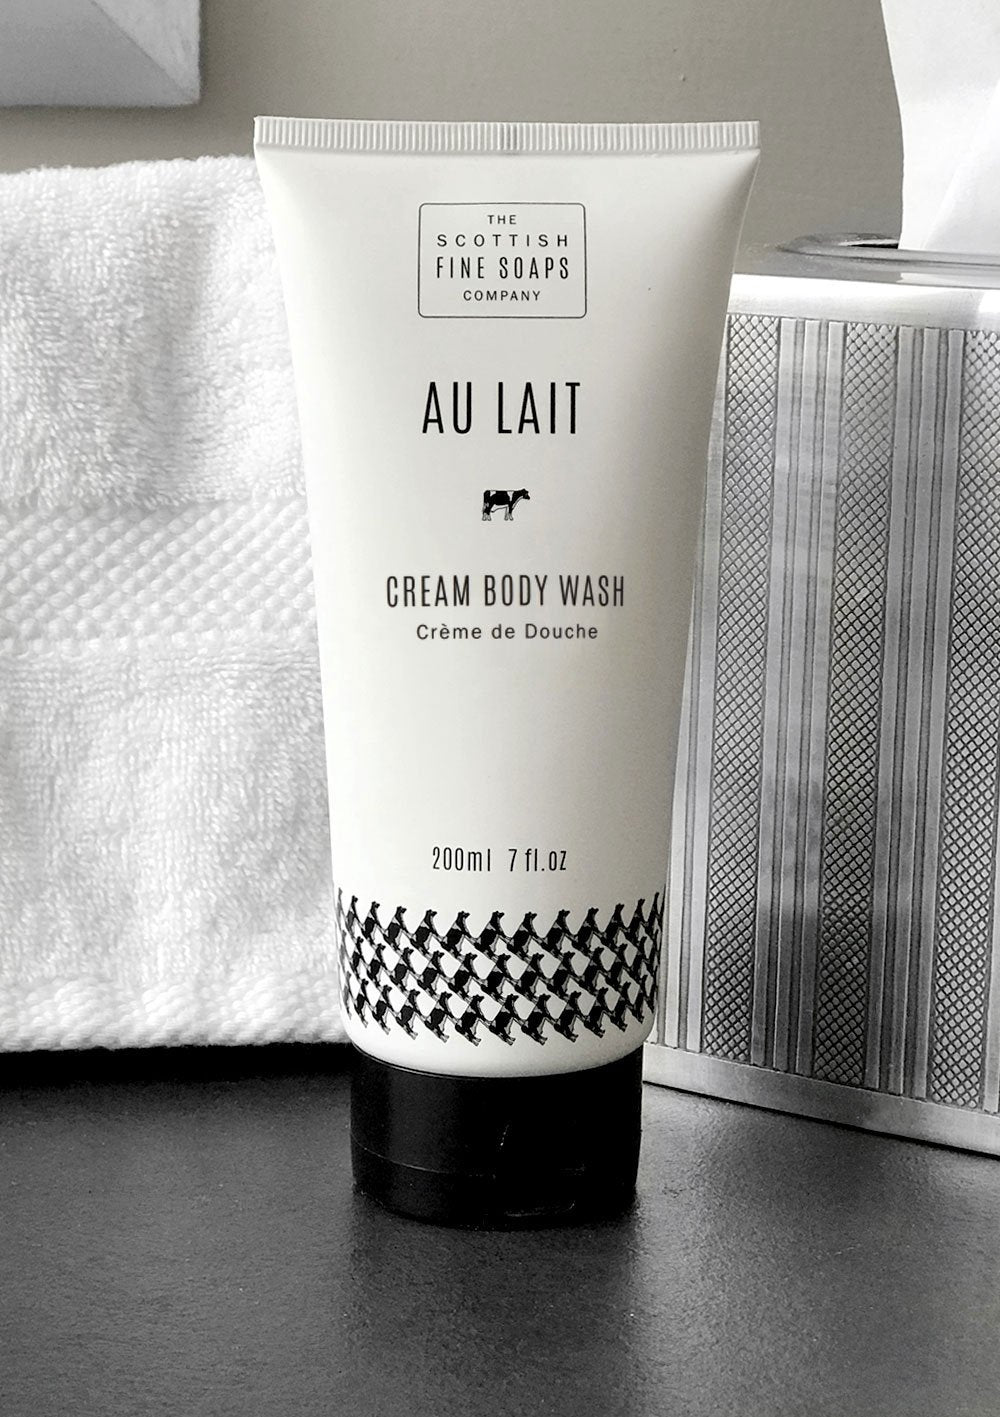 CREAM BODY WASH